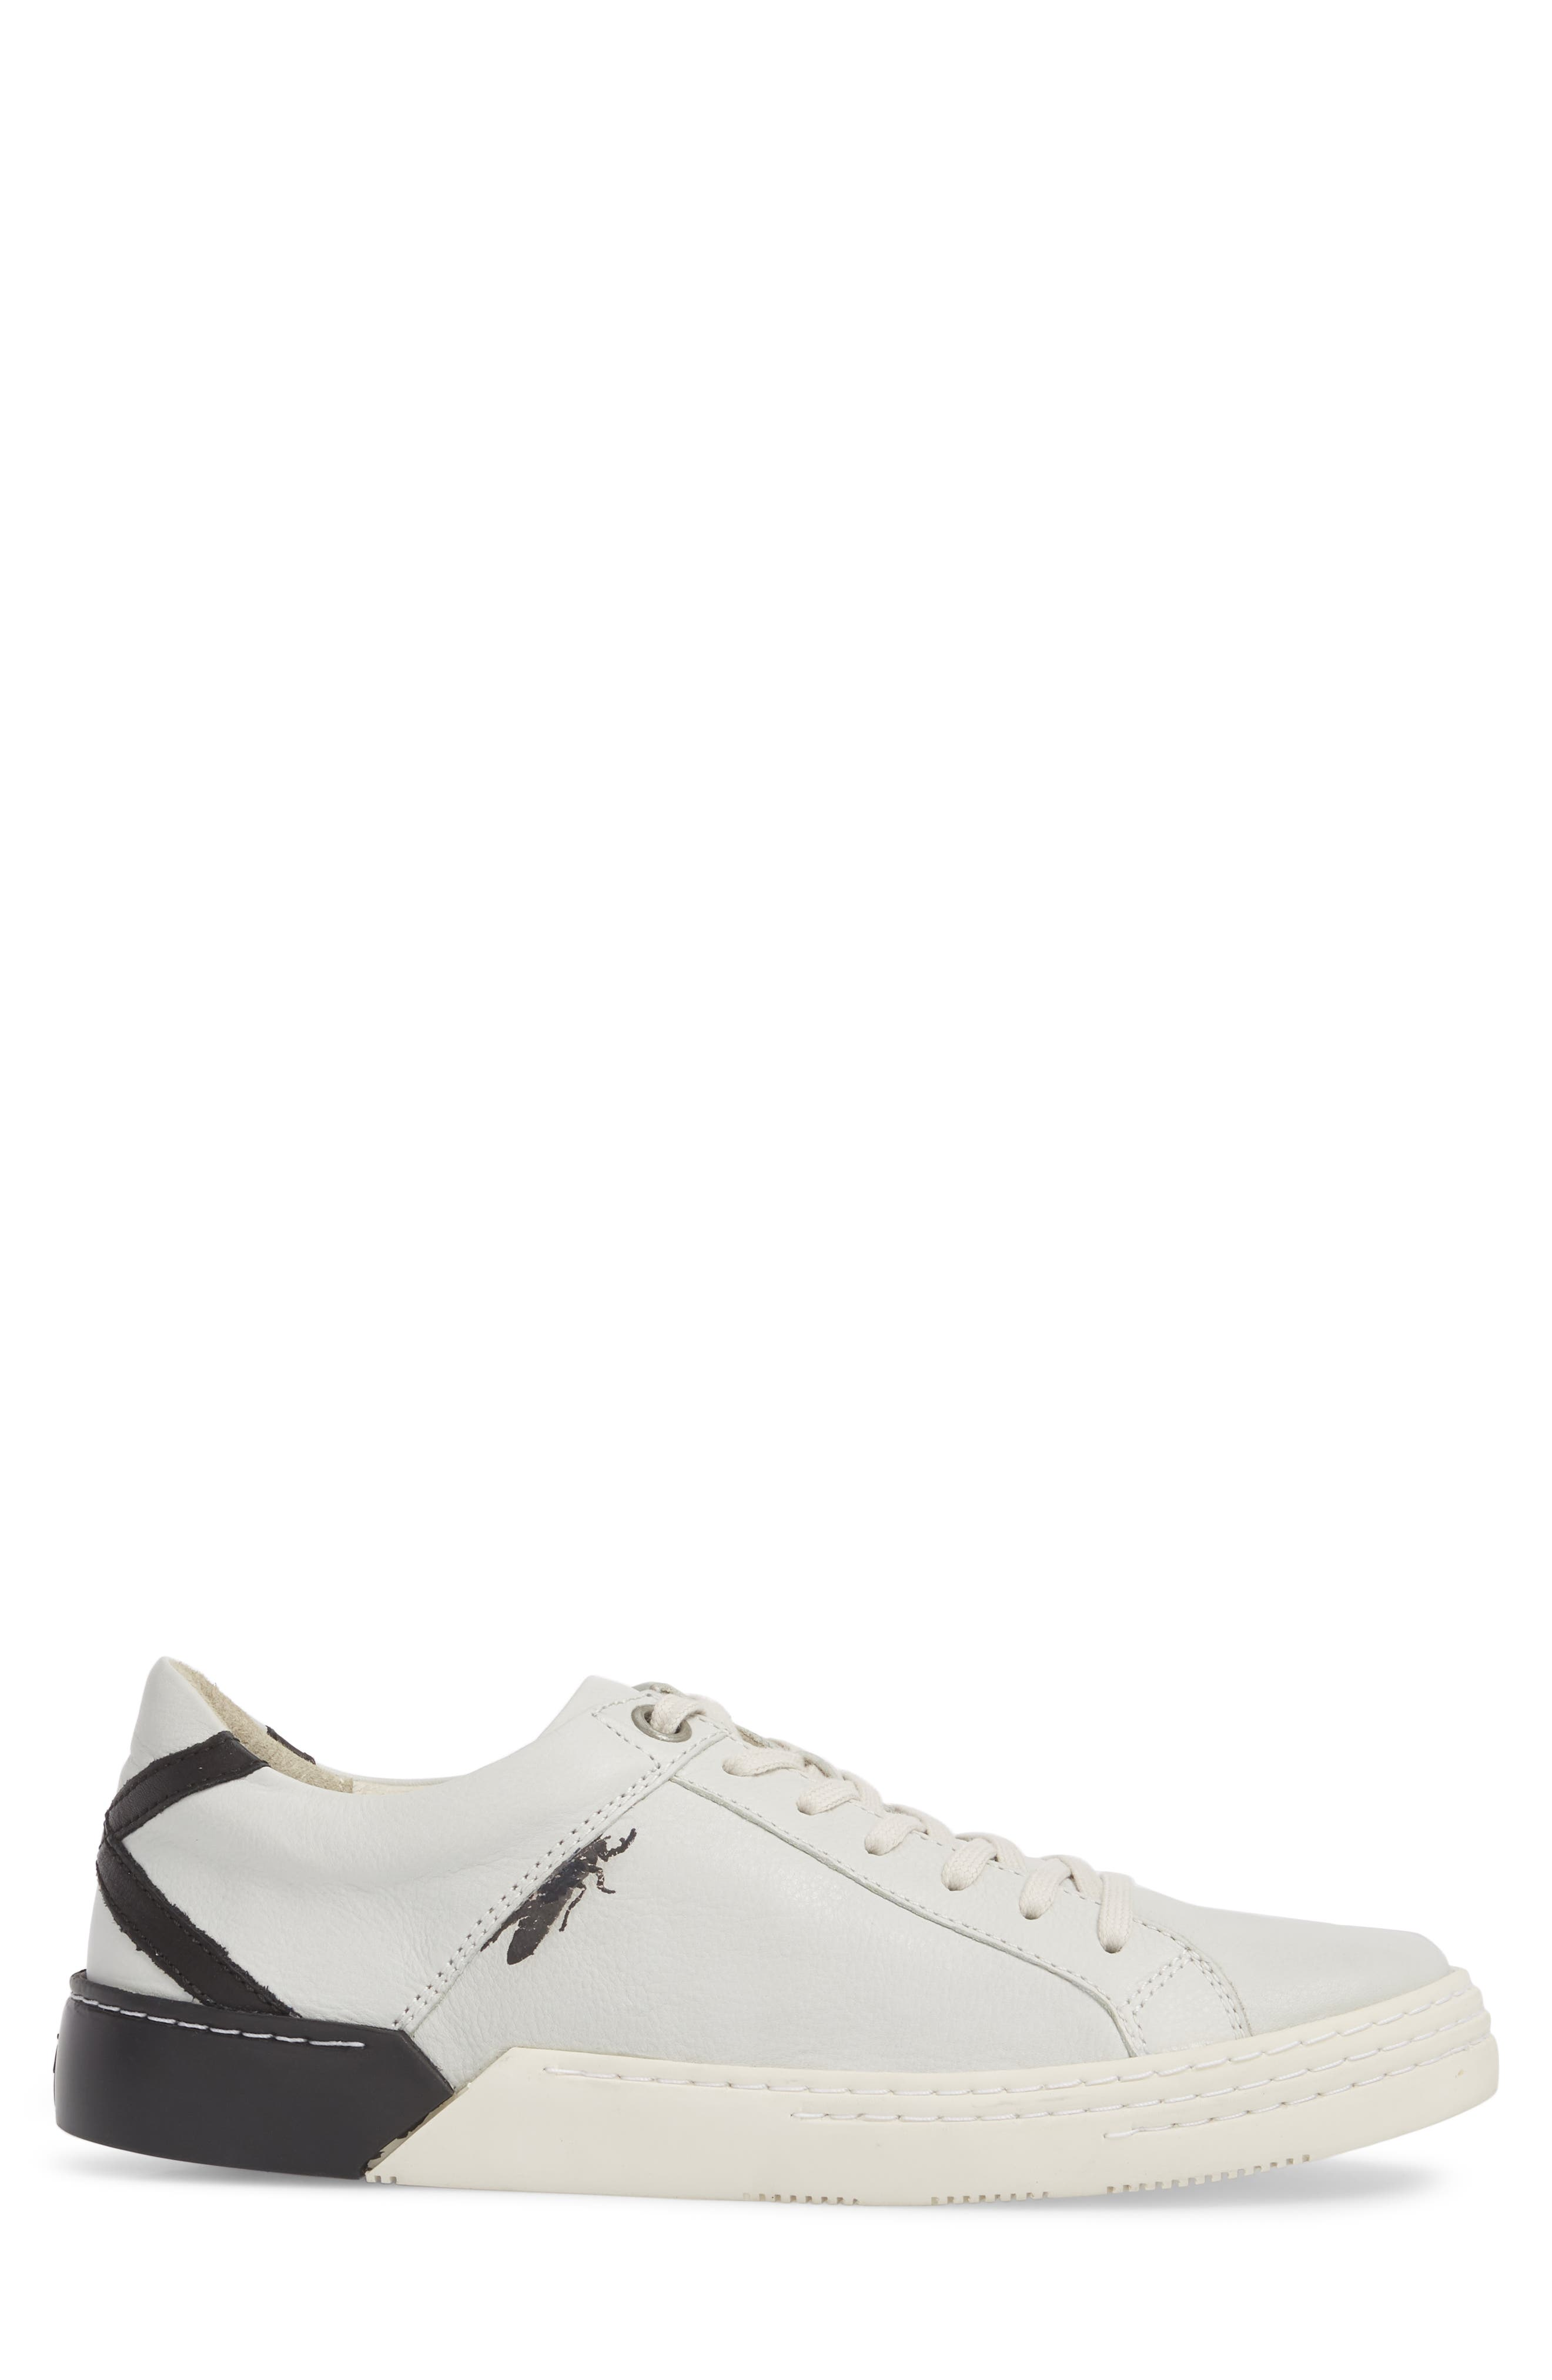 Sene Low Top Sneaker,                             Alternate thumbnail 3, color,                             Off White Leather